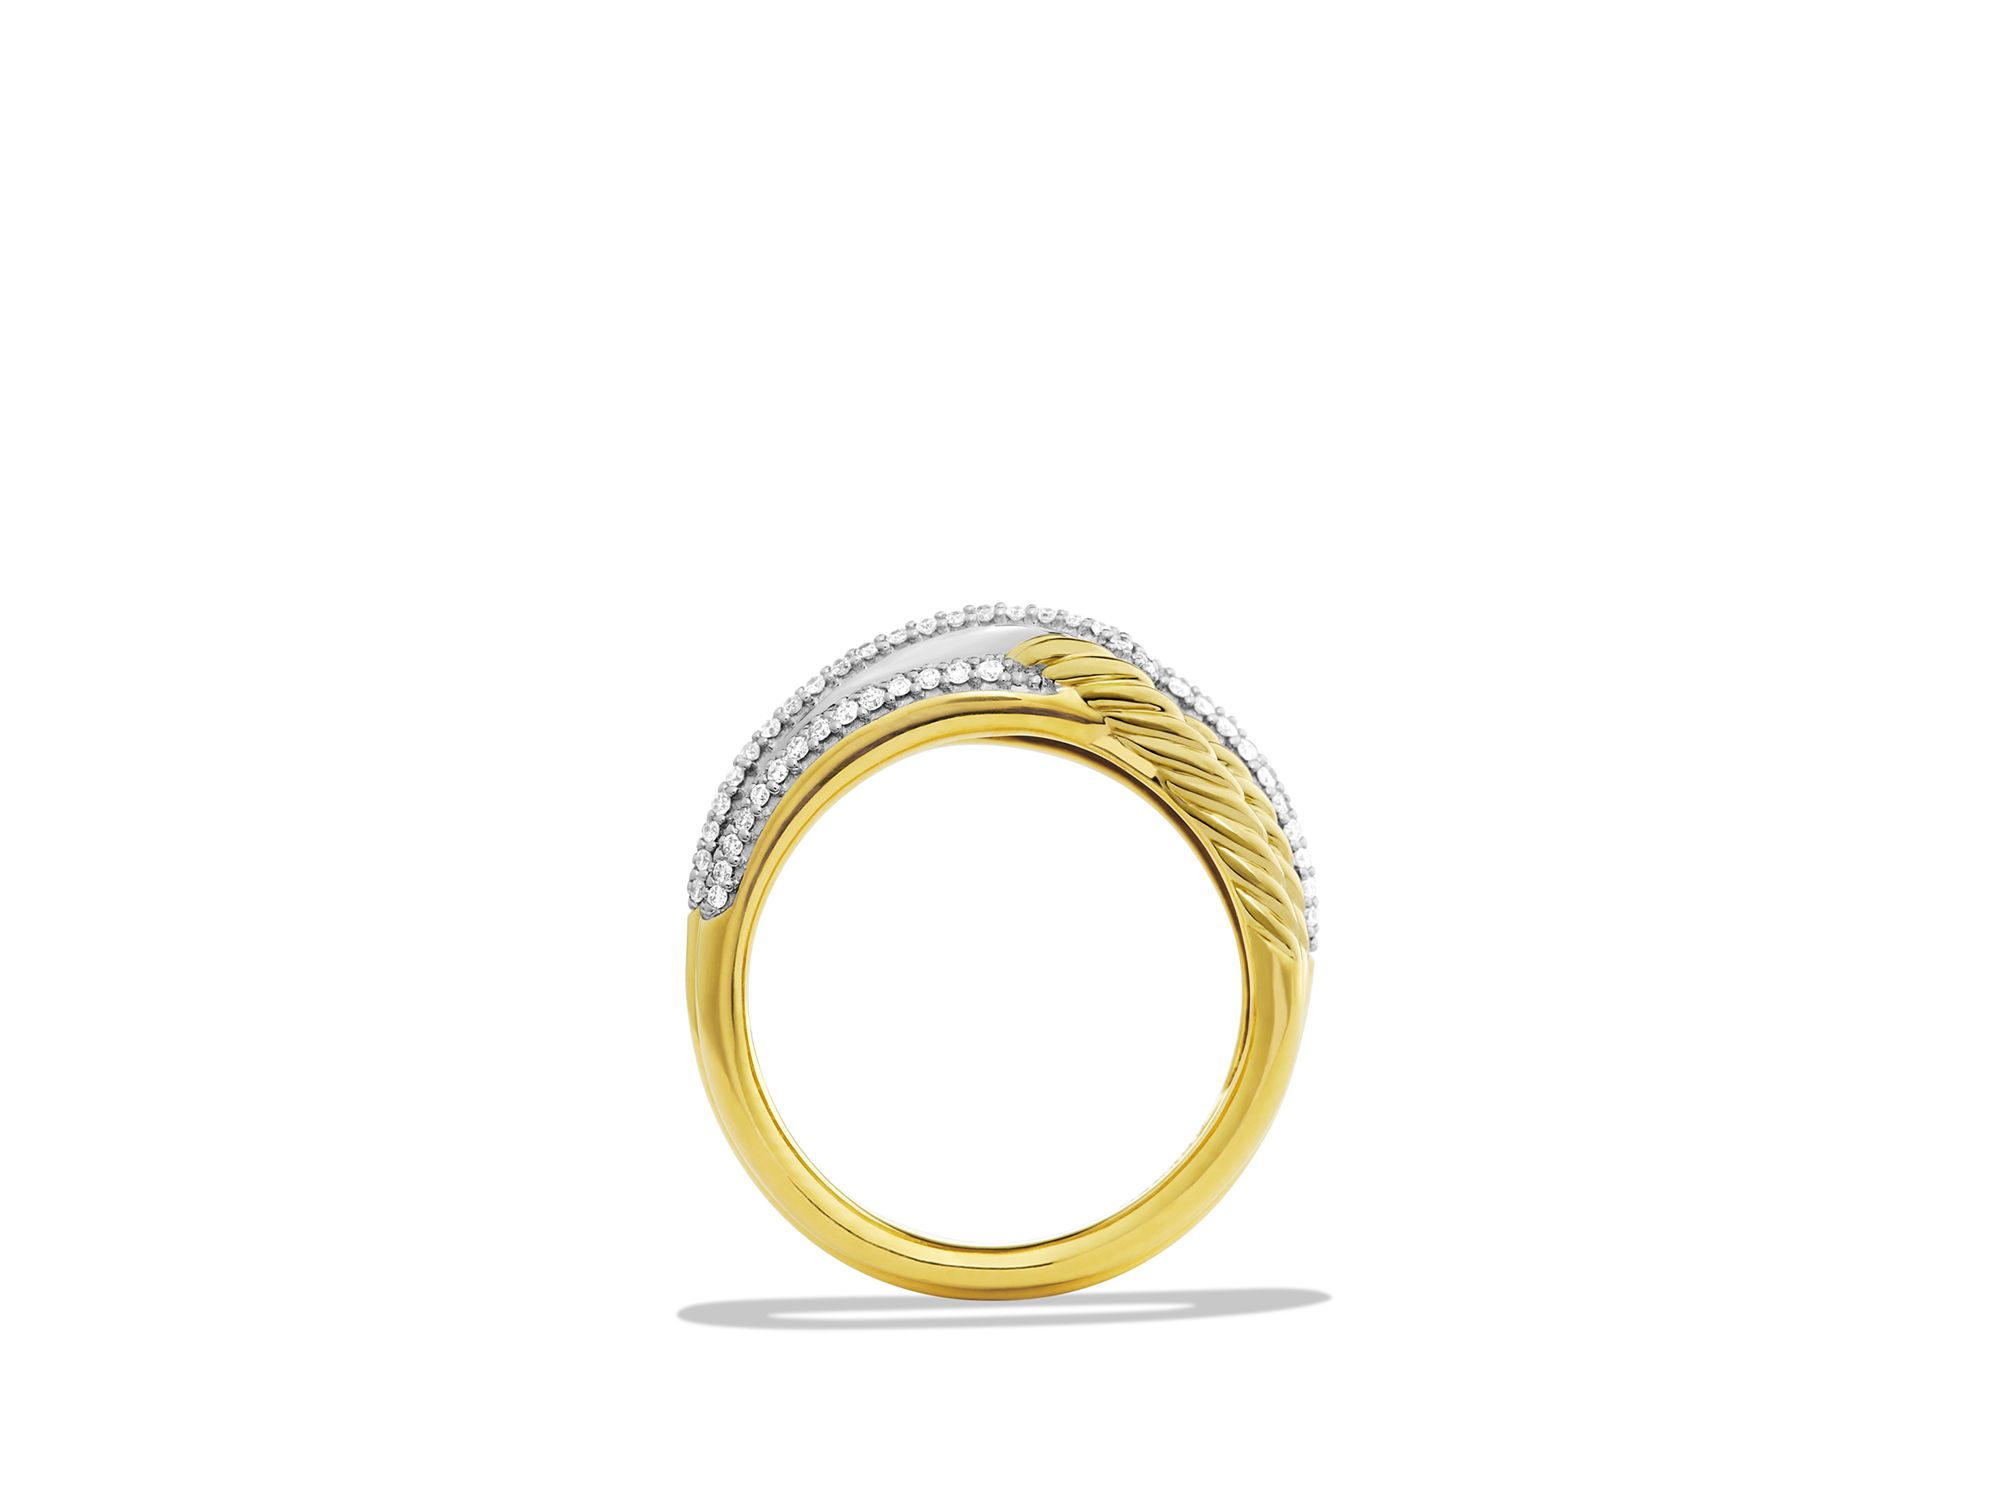 diamond ring infinity loop rings fabri jewelry gold double copy